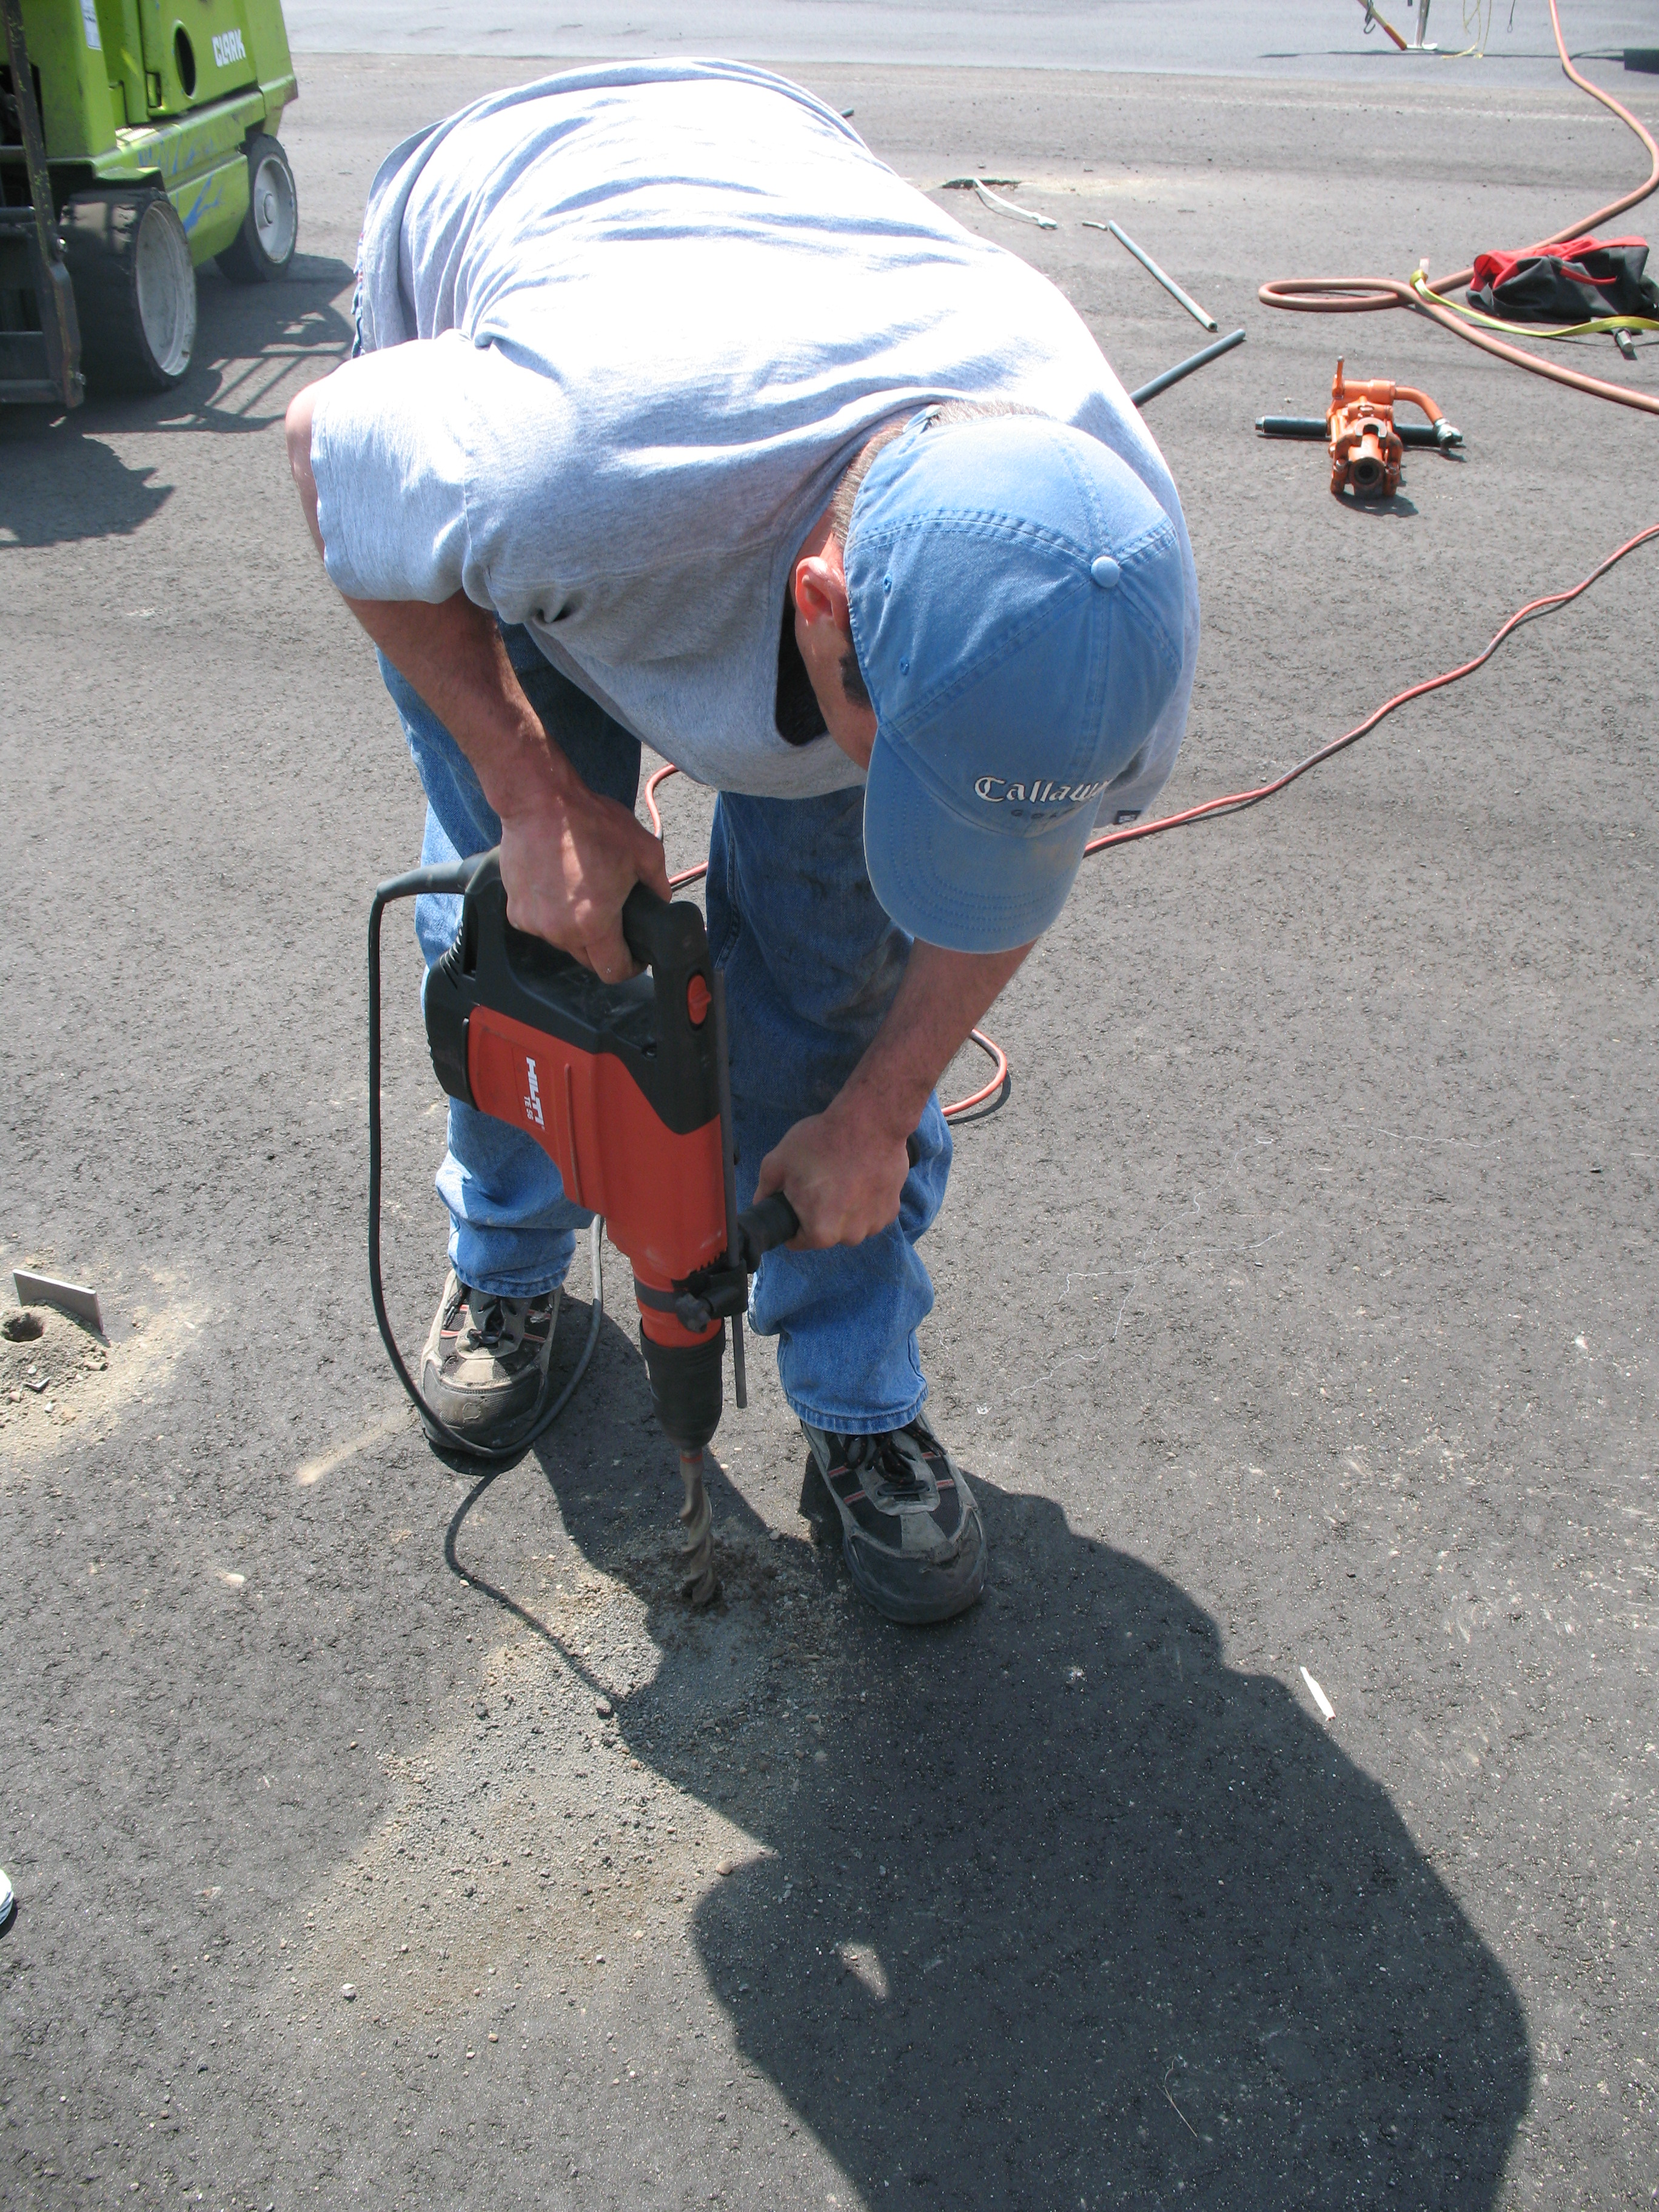 Pre-drill before installing anchors in asphalt